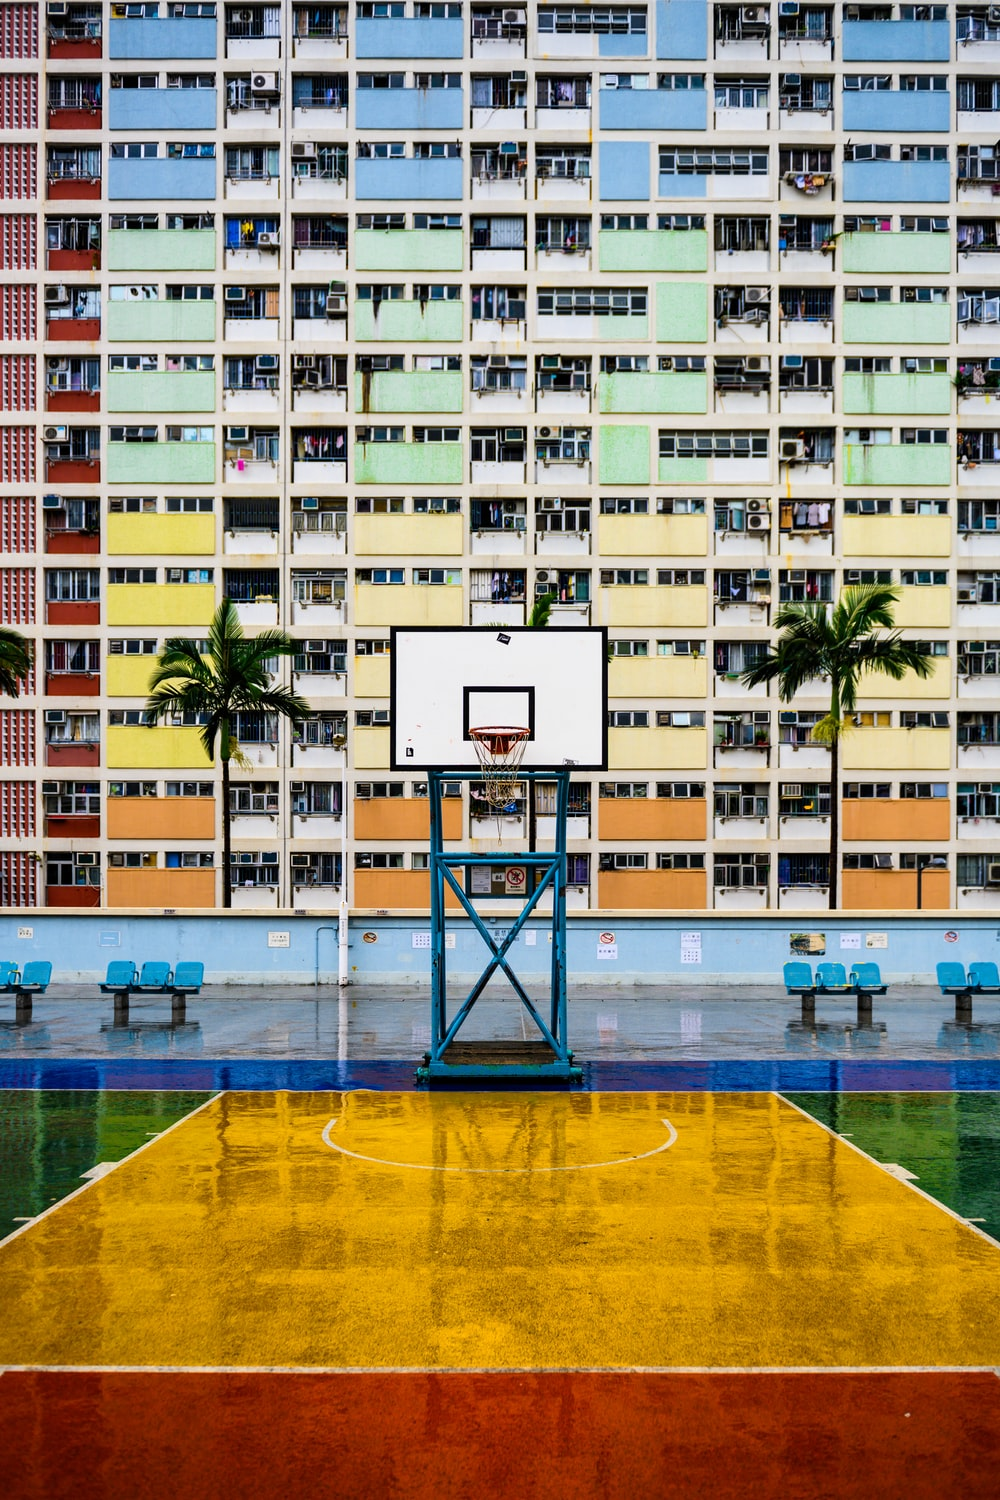 500 Basketball Court Pictures Download Free Images On